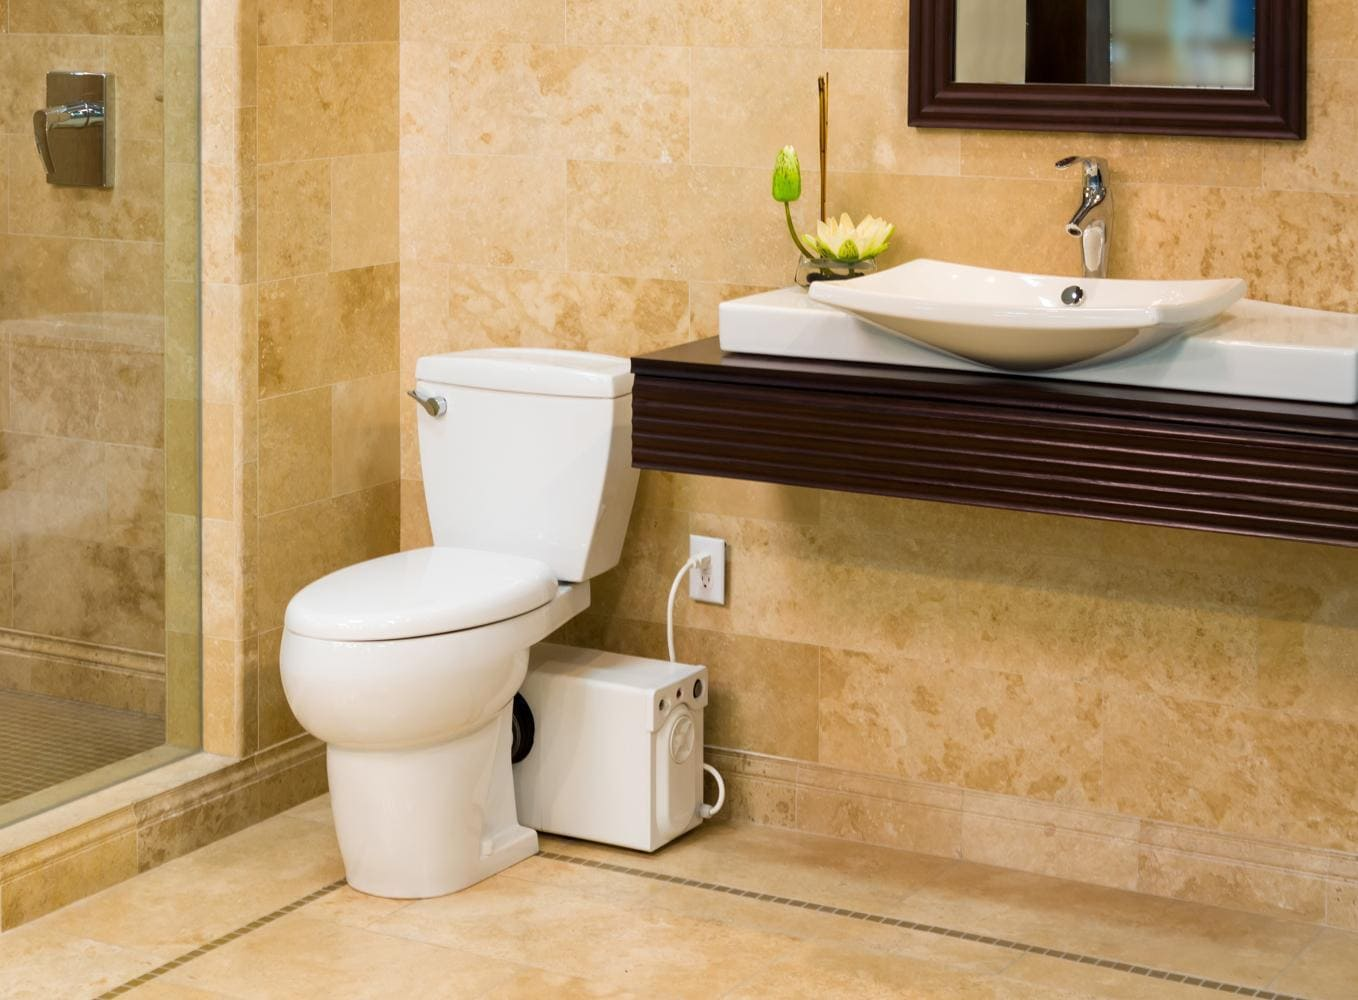 5 Macerating (Upflush) Toilets - (Reviews & Buying Guide 2018)